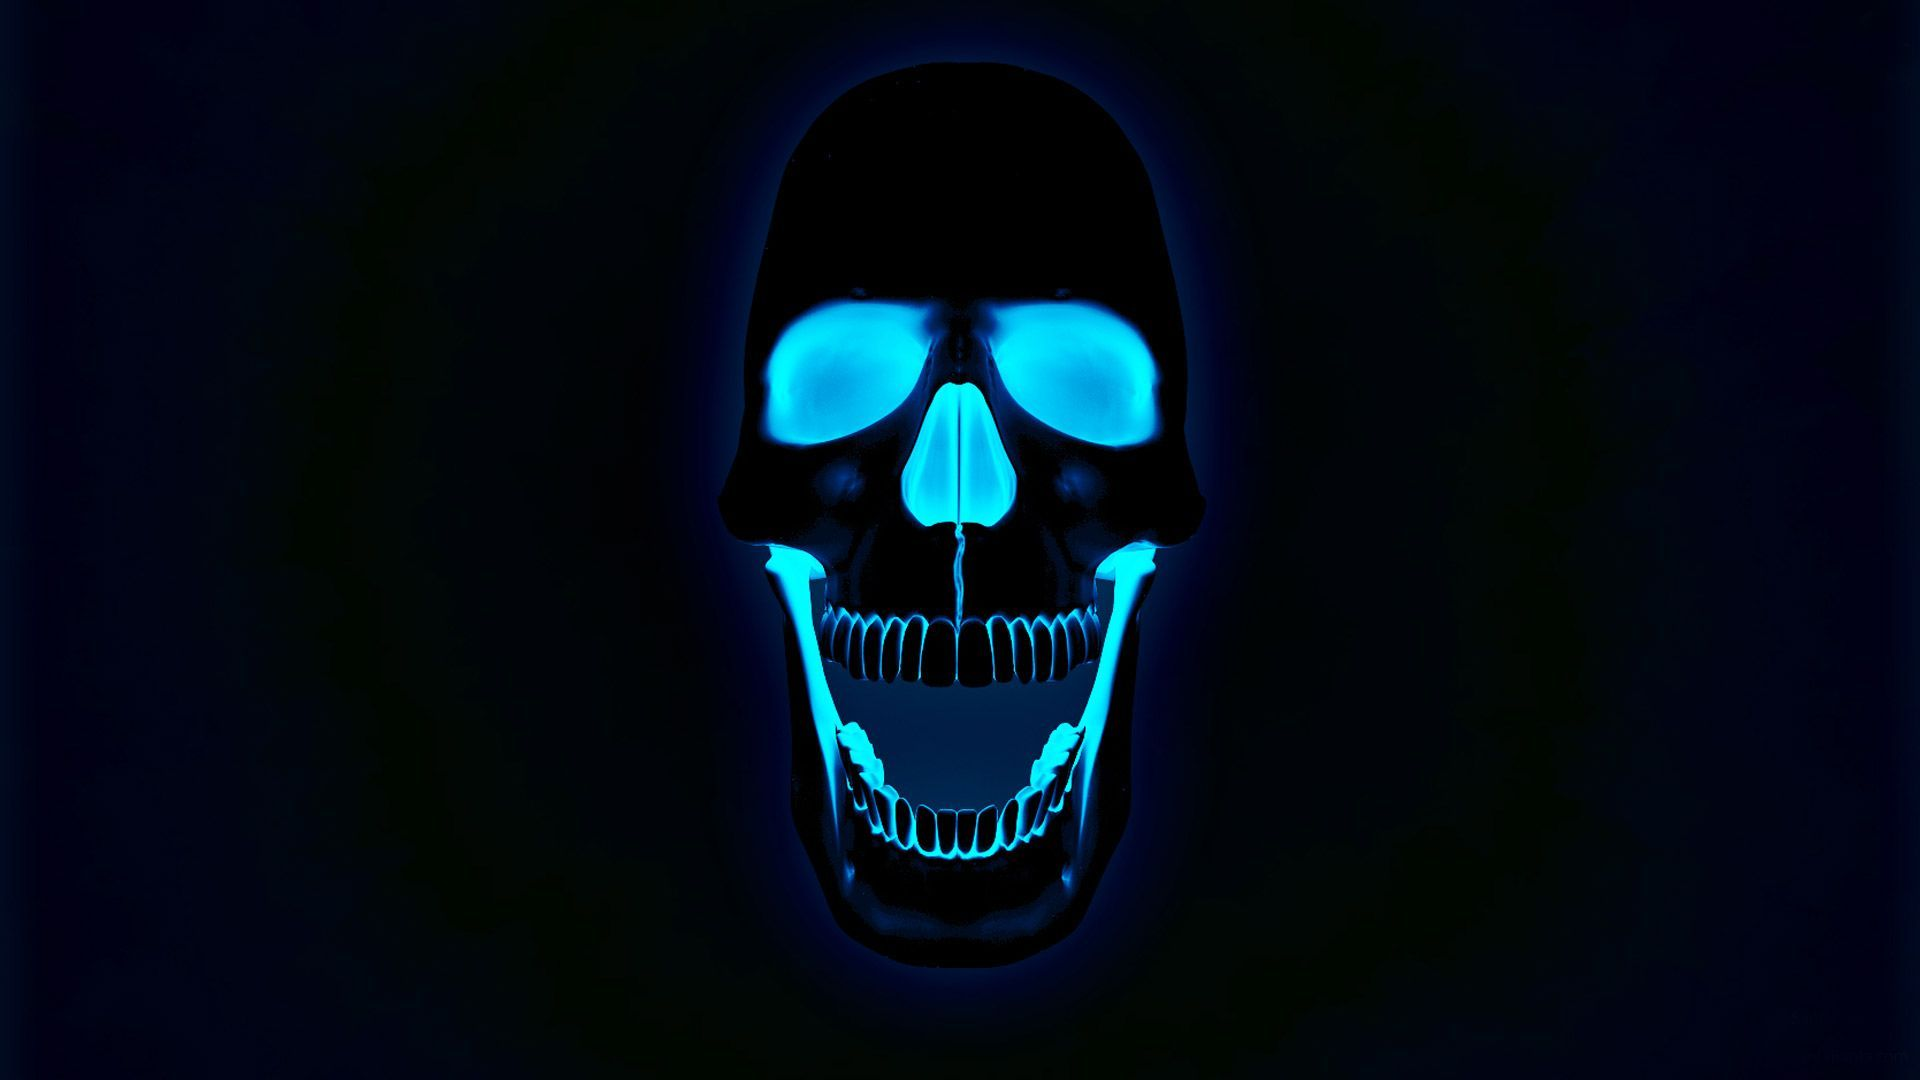 Cool Skull Wallpapers Download